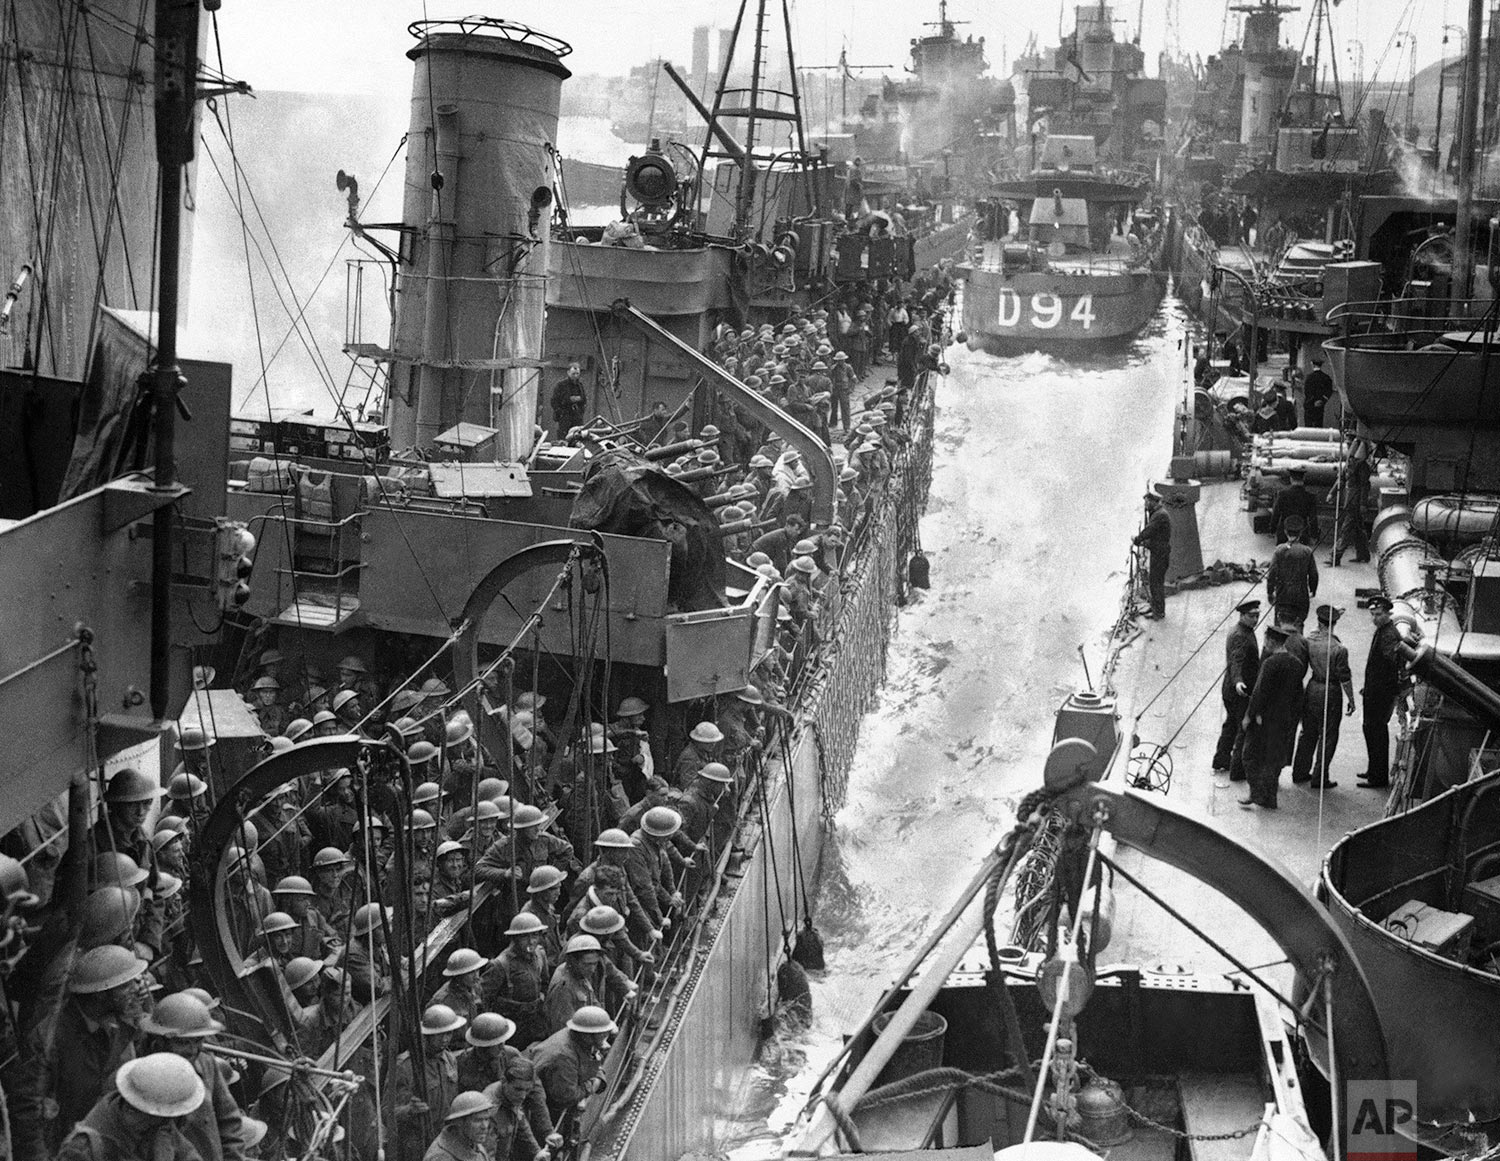 Men of the B.E.F. safely home after their gallant fight in Flanders seen on transport ships at the Quayside on June 6, 1940. Many sorts and sizes of vessels taking part in the grand evacuation from Dunkirk. (AP Photo)